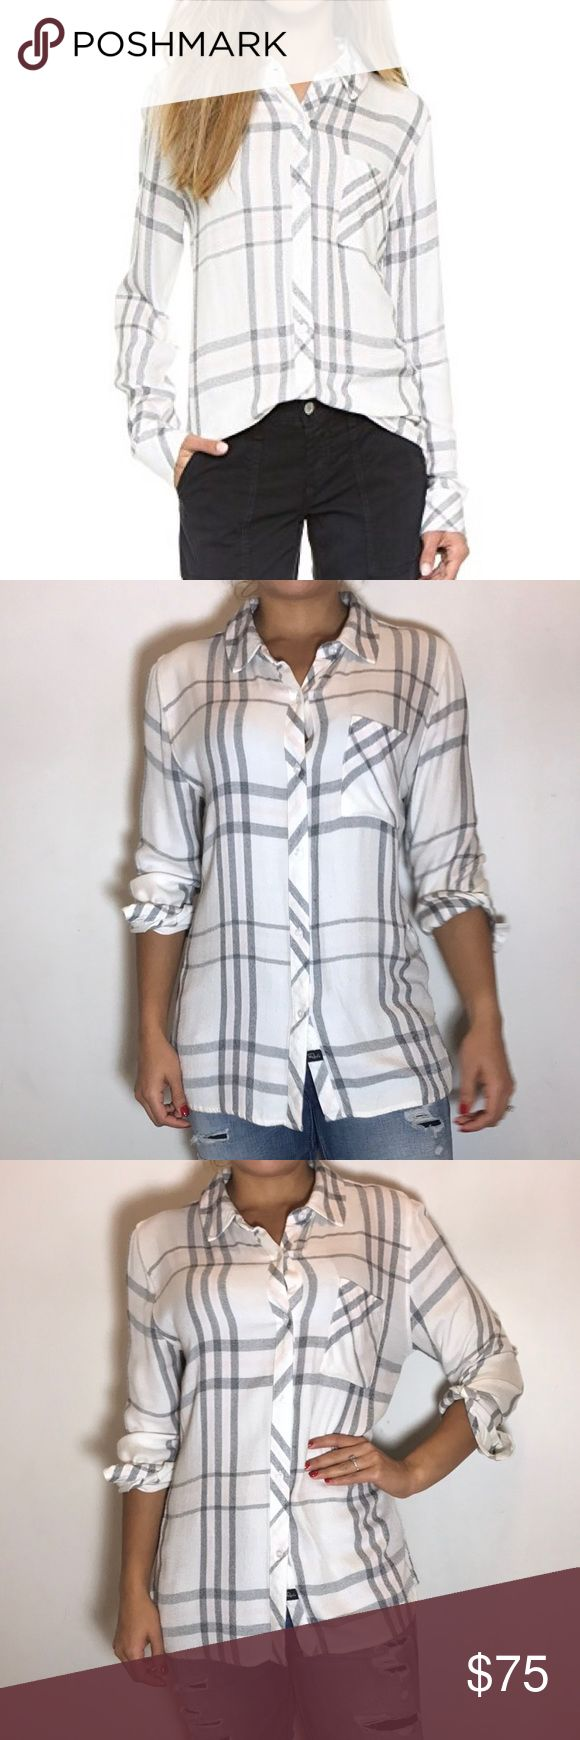 Rails 'Hunter' White Plaid Shirt Rails 'Hunter' Shirt in White Sky Melange Plaid. -Size M. -Long sleeves; single-button cuffs. -Patch pocket at left chest. -Relaxed silhouette, shirttail hem. -Rayon. -Excellent condition.   NO Trades. Please make all offers through offer button. Rails Tops Tank Tops